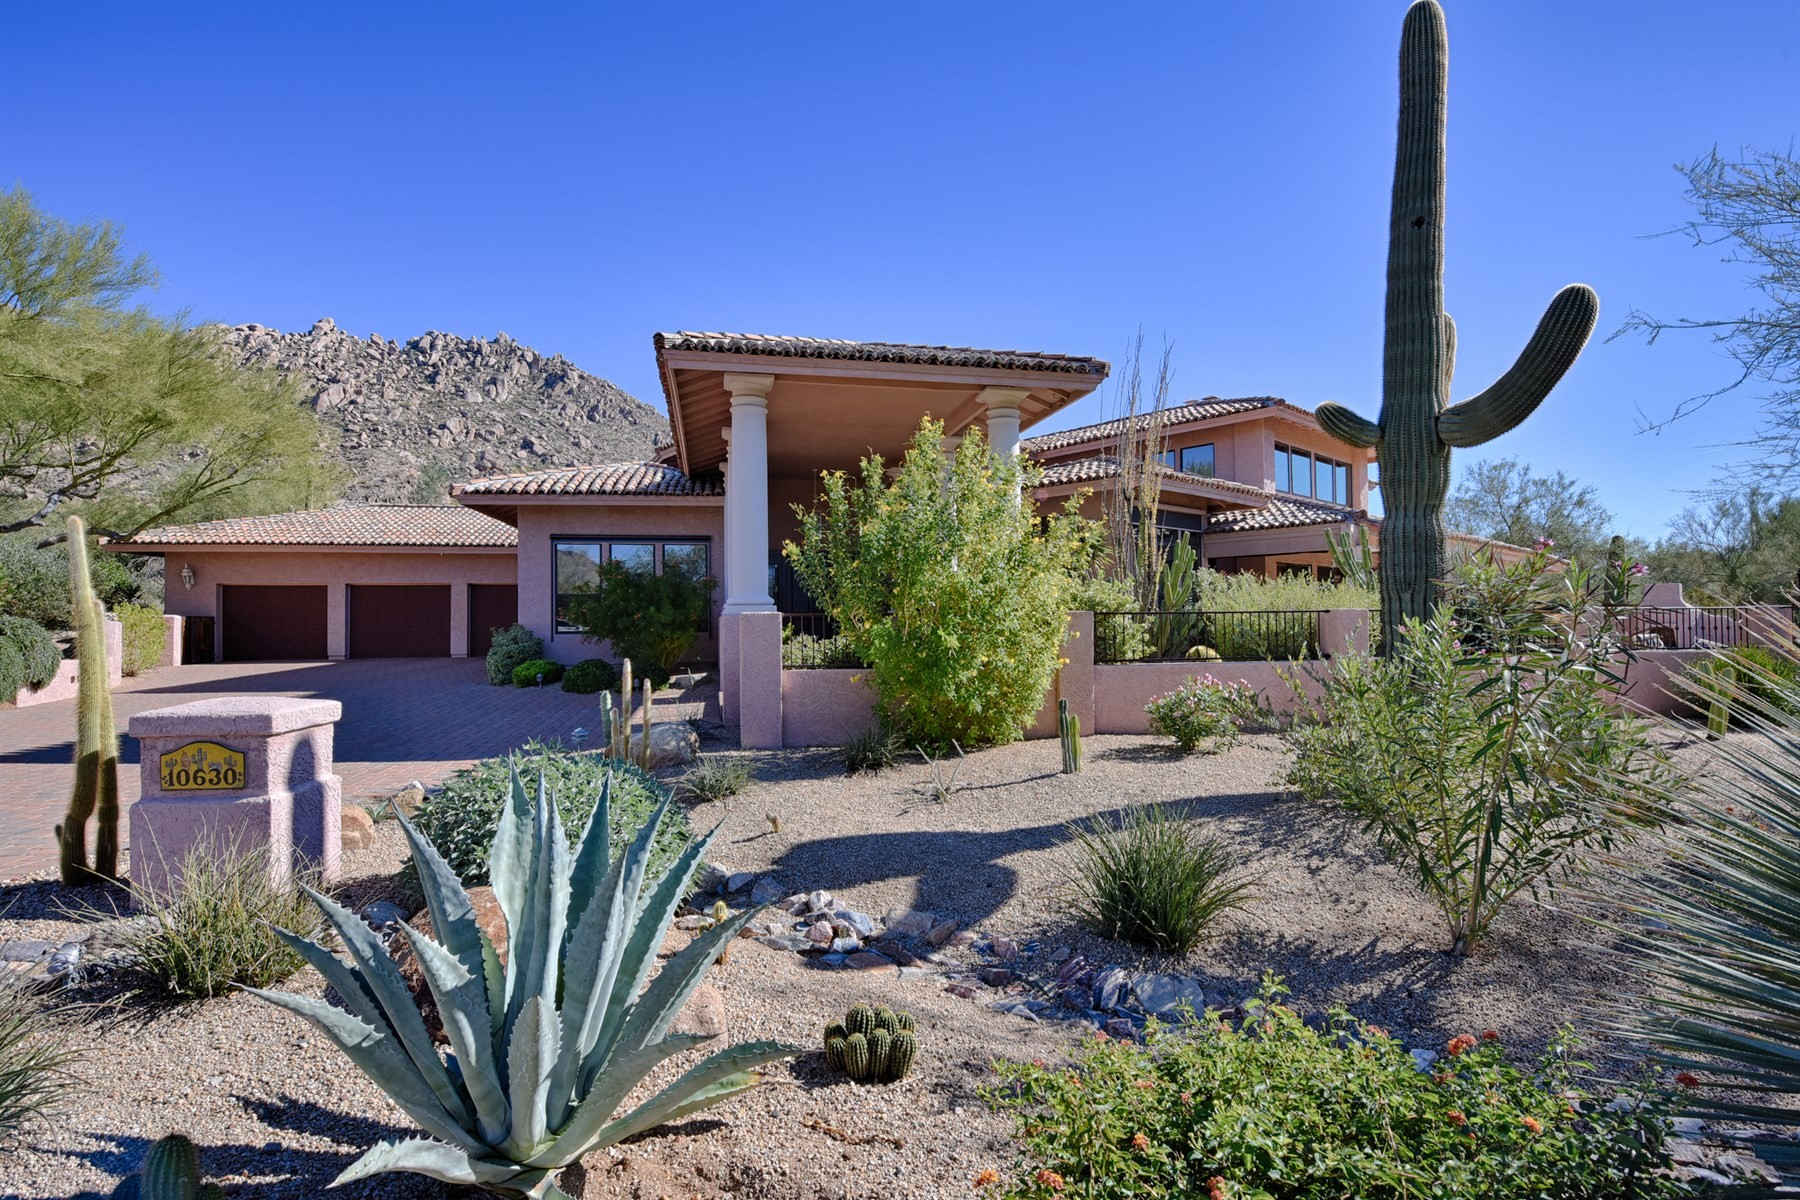 Single Family Home for Sale at Beautiful home situated on the corner of a cul-de-sac with sweeping views 10630 E Ranch Gate Rd Scottsdale, Arizona, 85255 United States